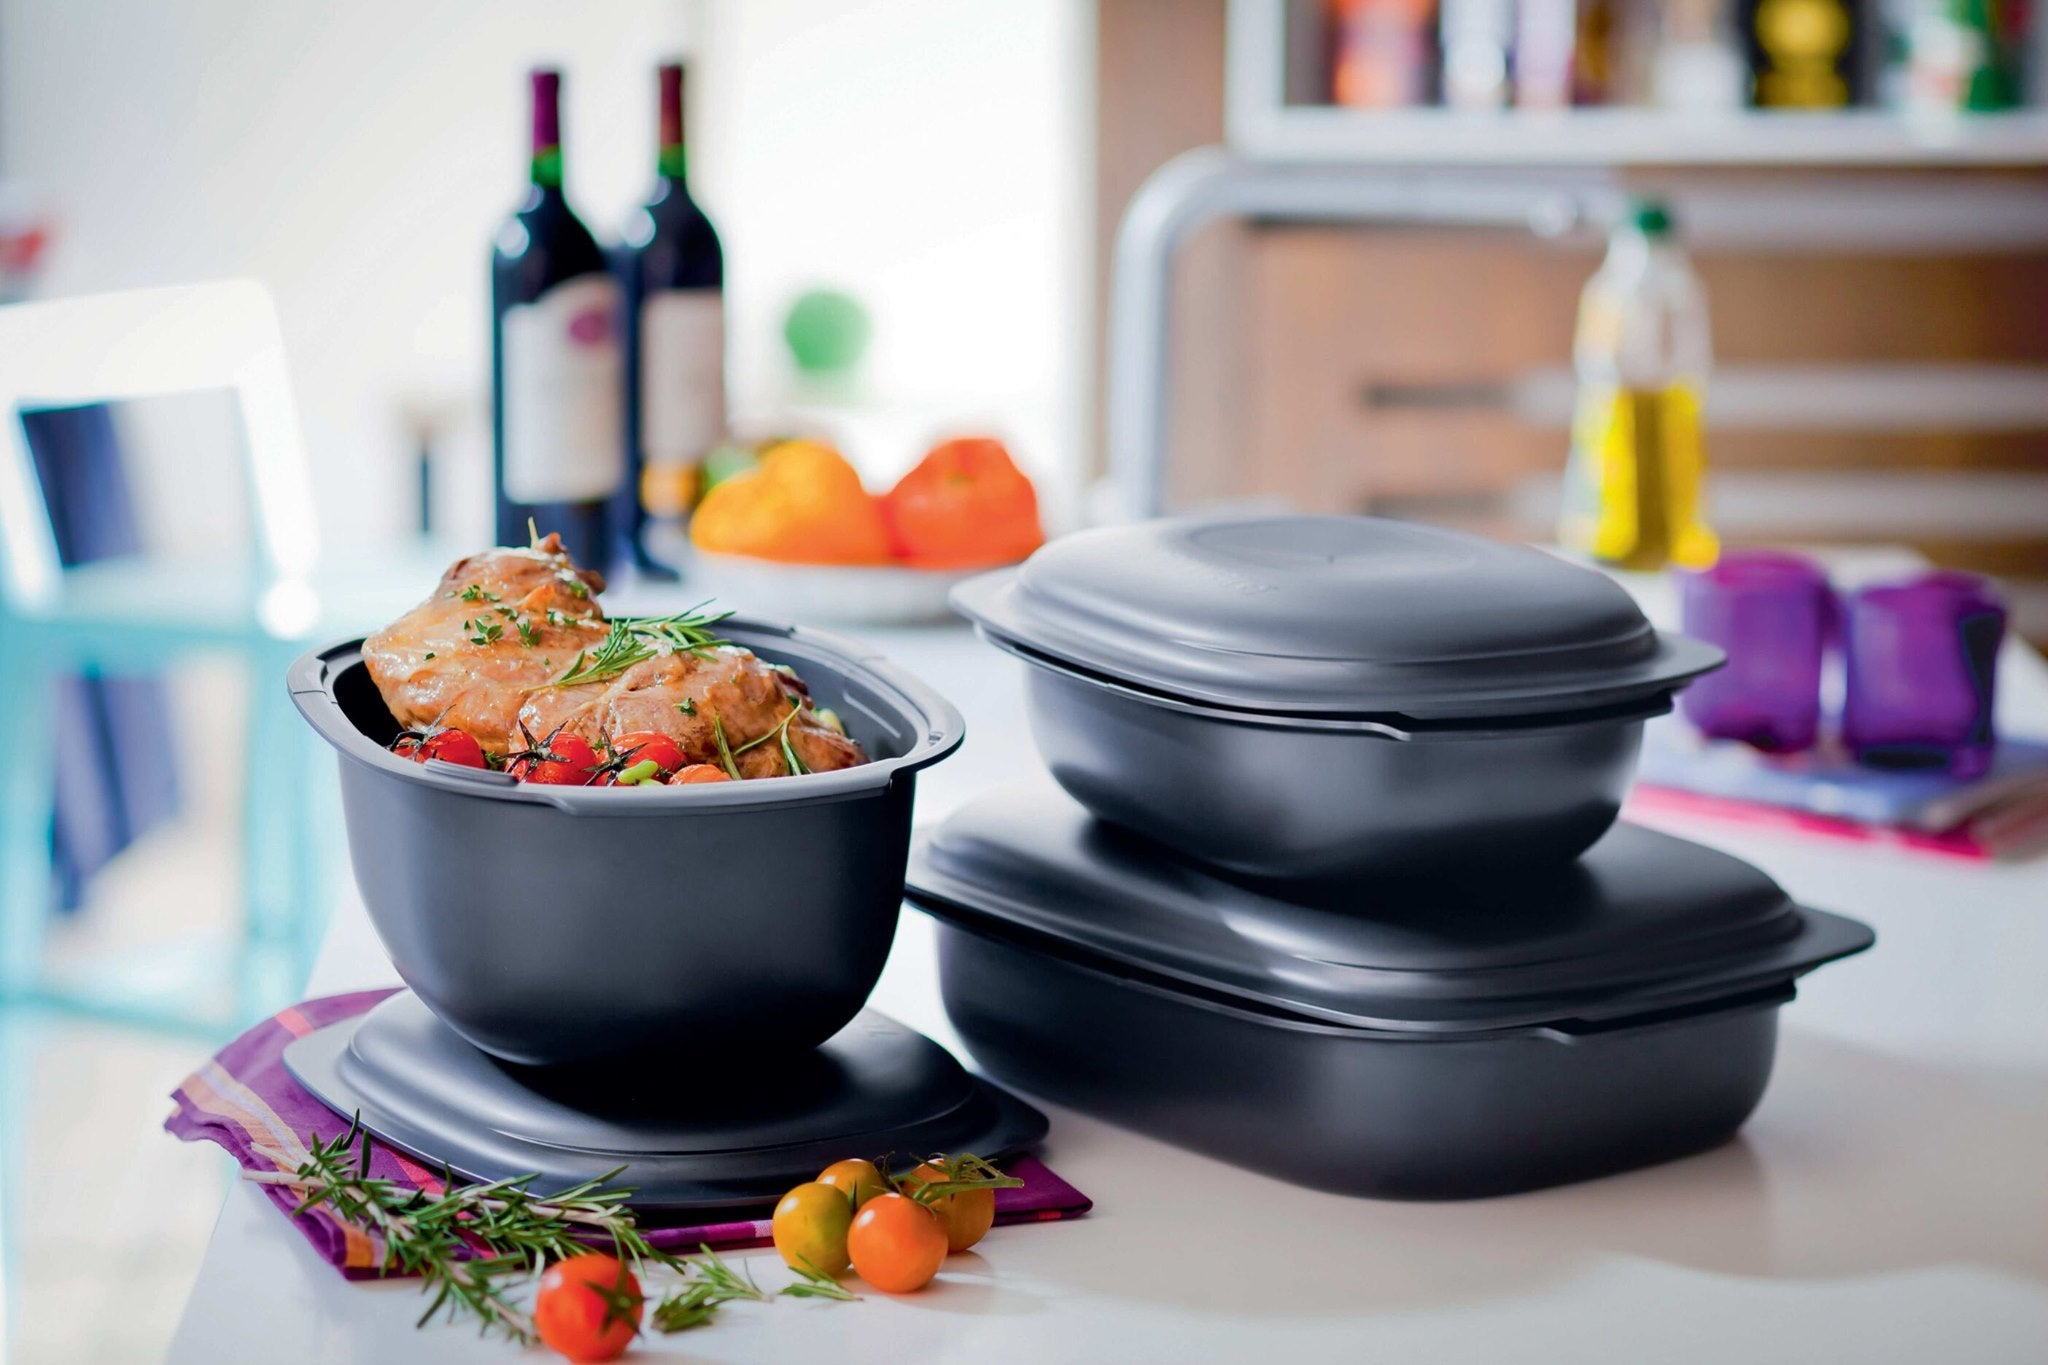 Tupperware food storage containers